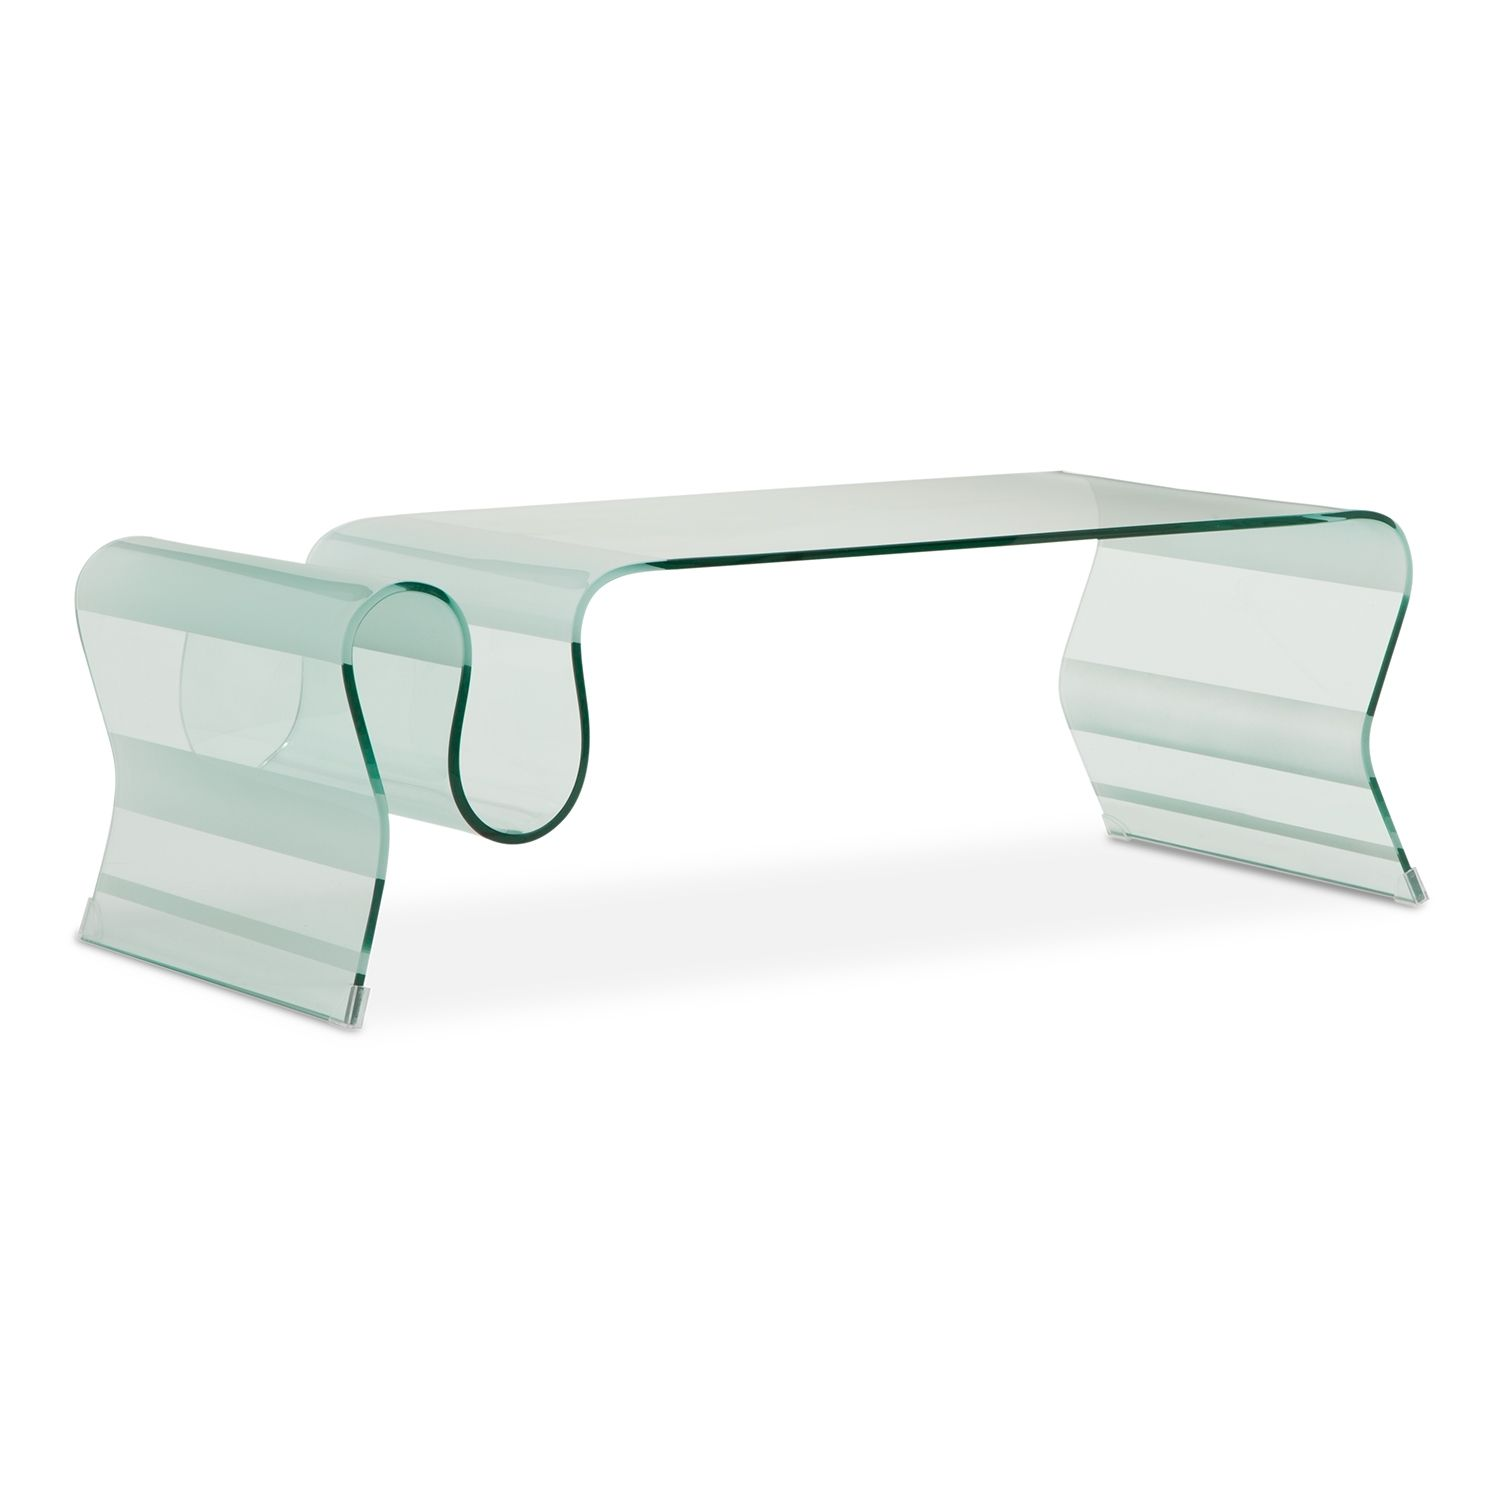 Lucite table so cool Value City Furniture Pinterest